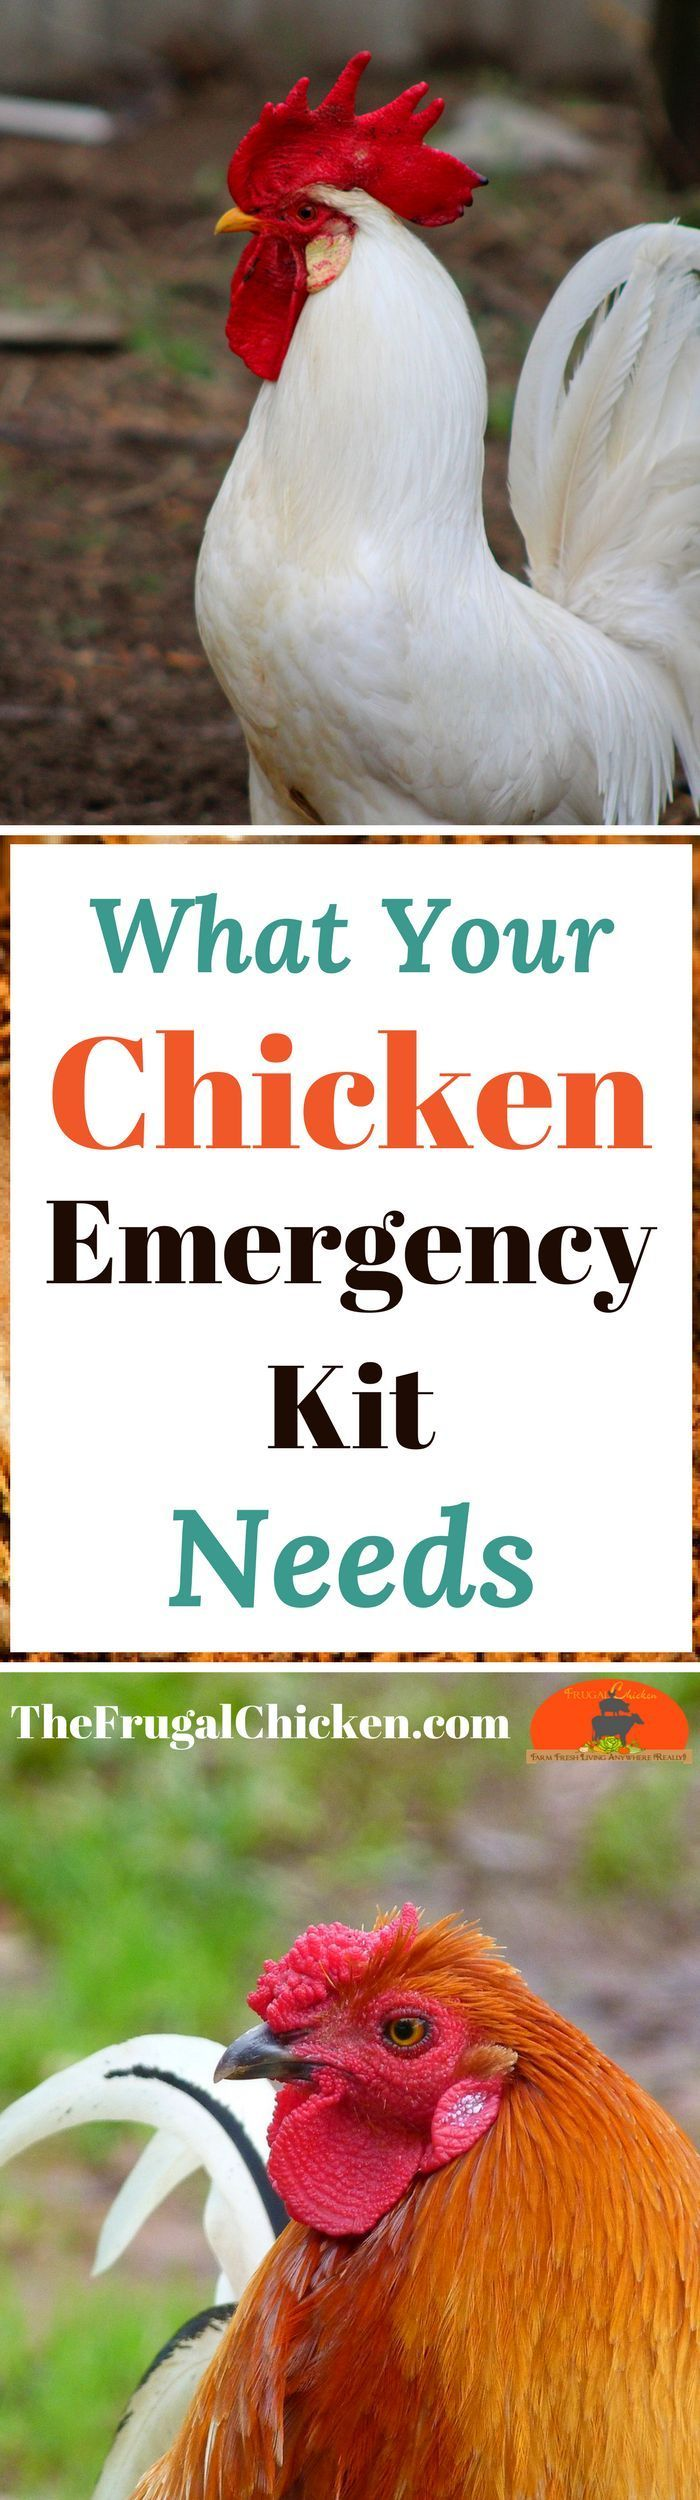 Chicken Emergency Kits Making Stressful Situations Less